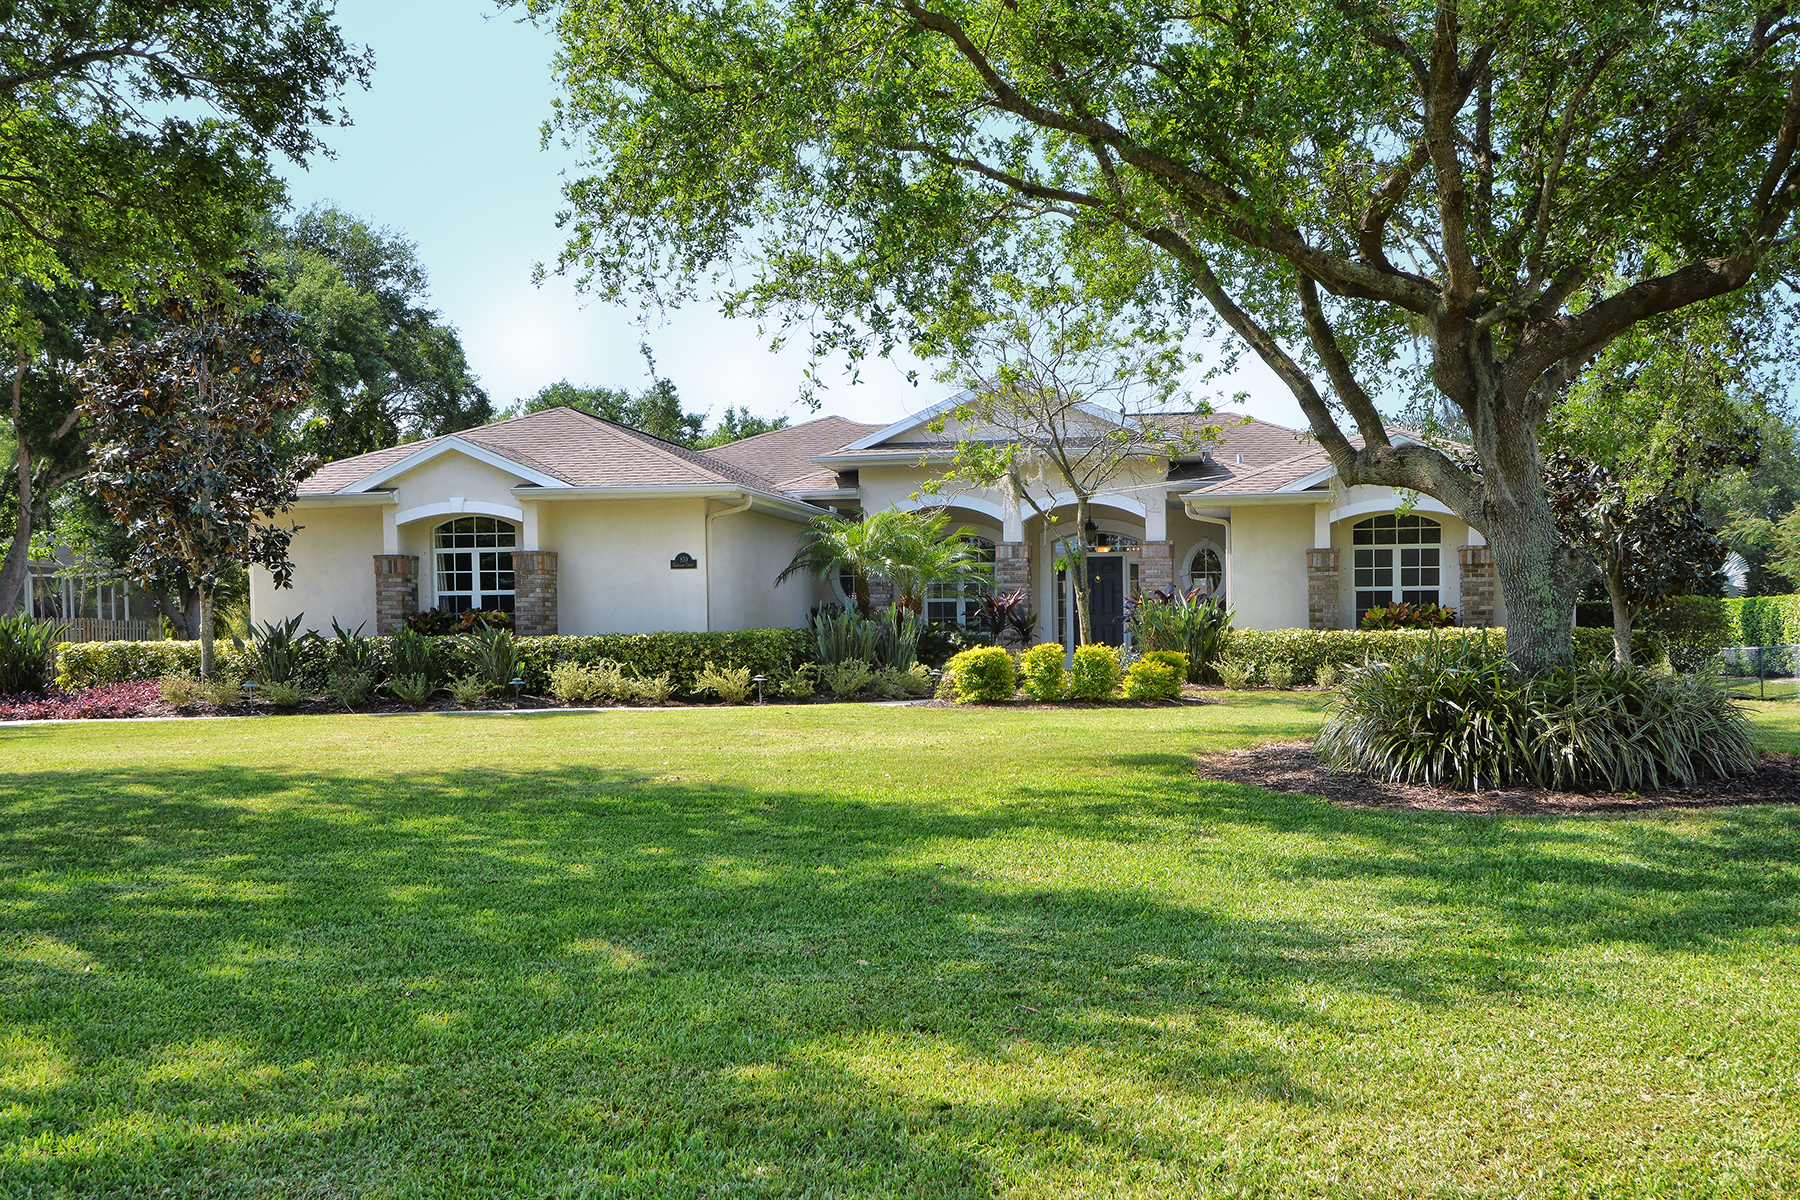 Single Family Home for Sale at MISSION VALLEY ESTATES 830 Highland Cir Nokomis, Florida, 34275 United States